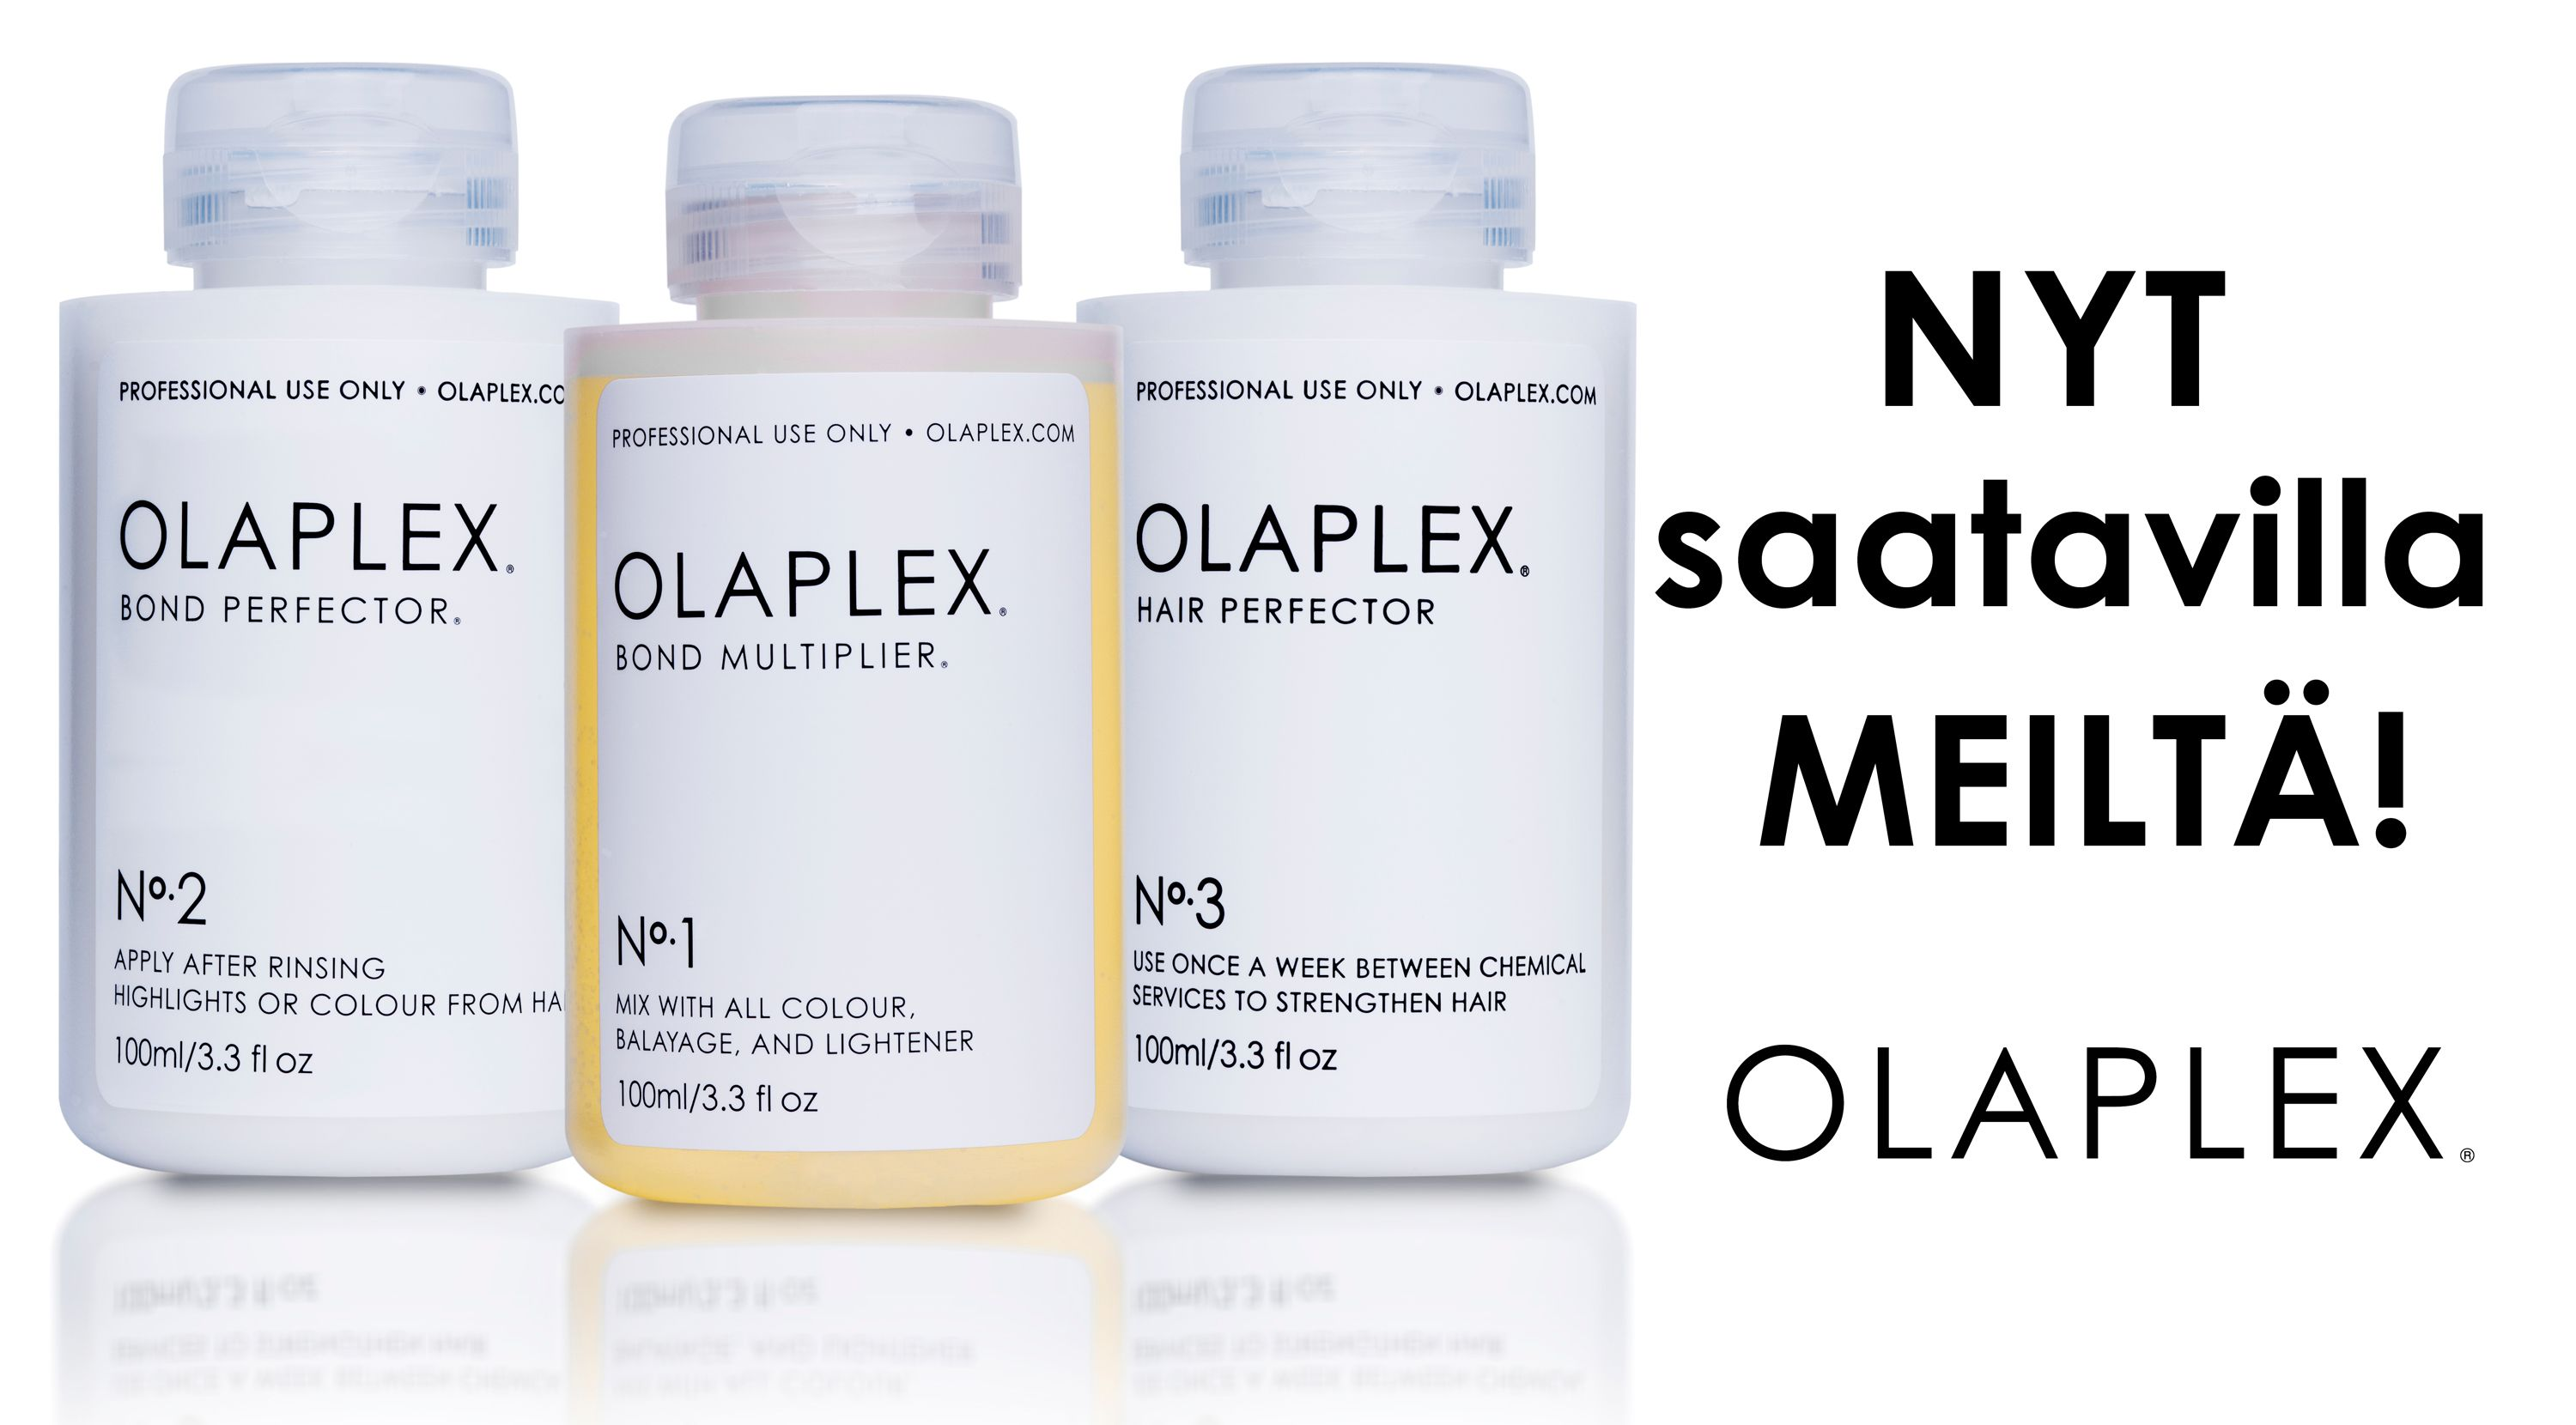 Olaplex helsingin puodeista brands and products pinterest